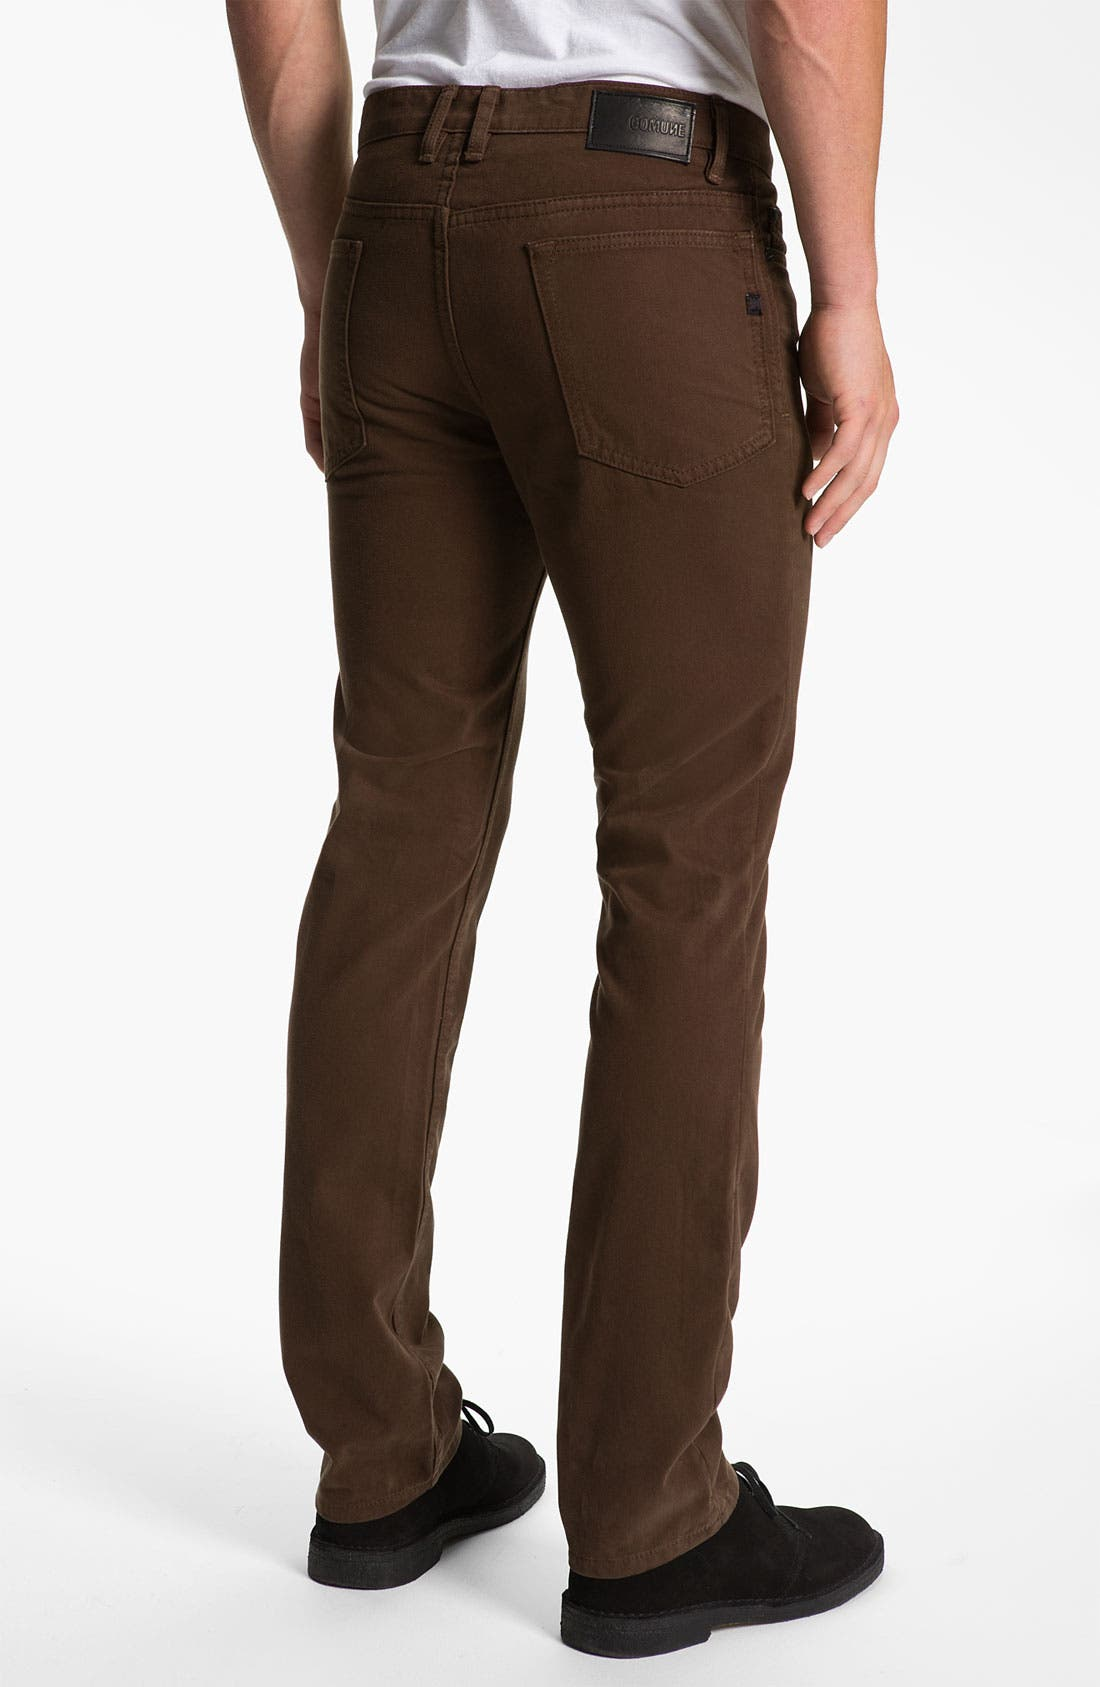 Alternate Image 1 Selected - Comune 'Ricky' Slim Straight Leg Jeans (Espresso)